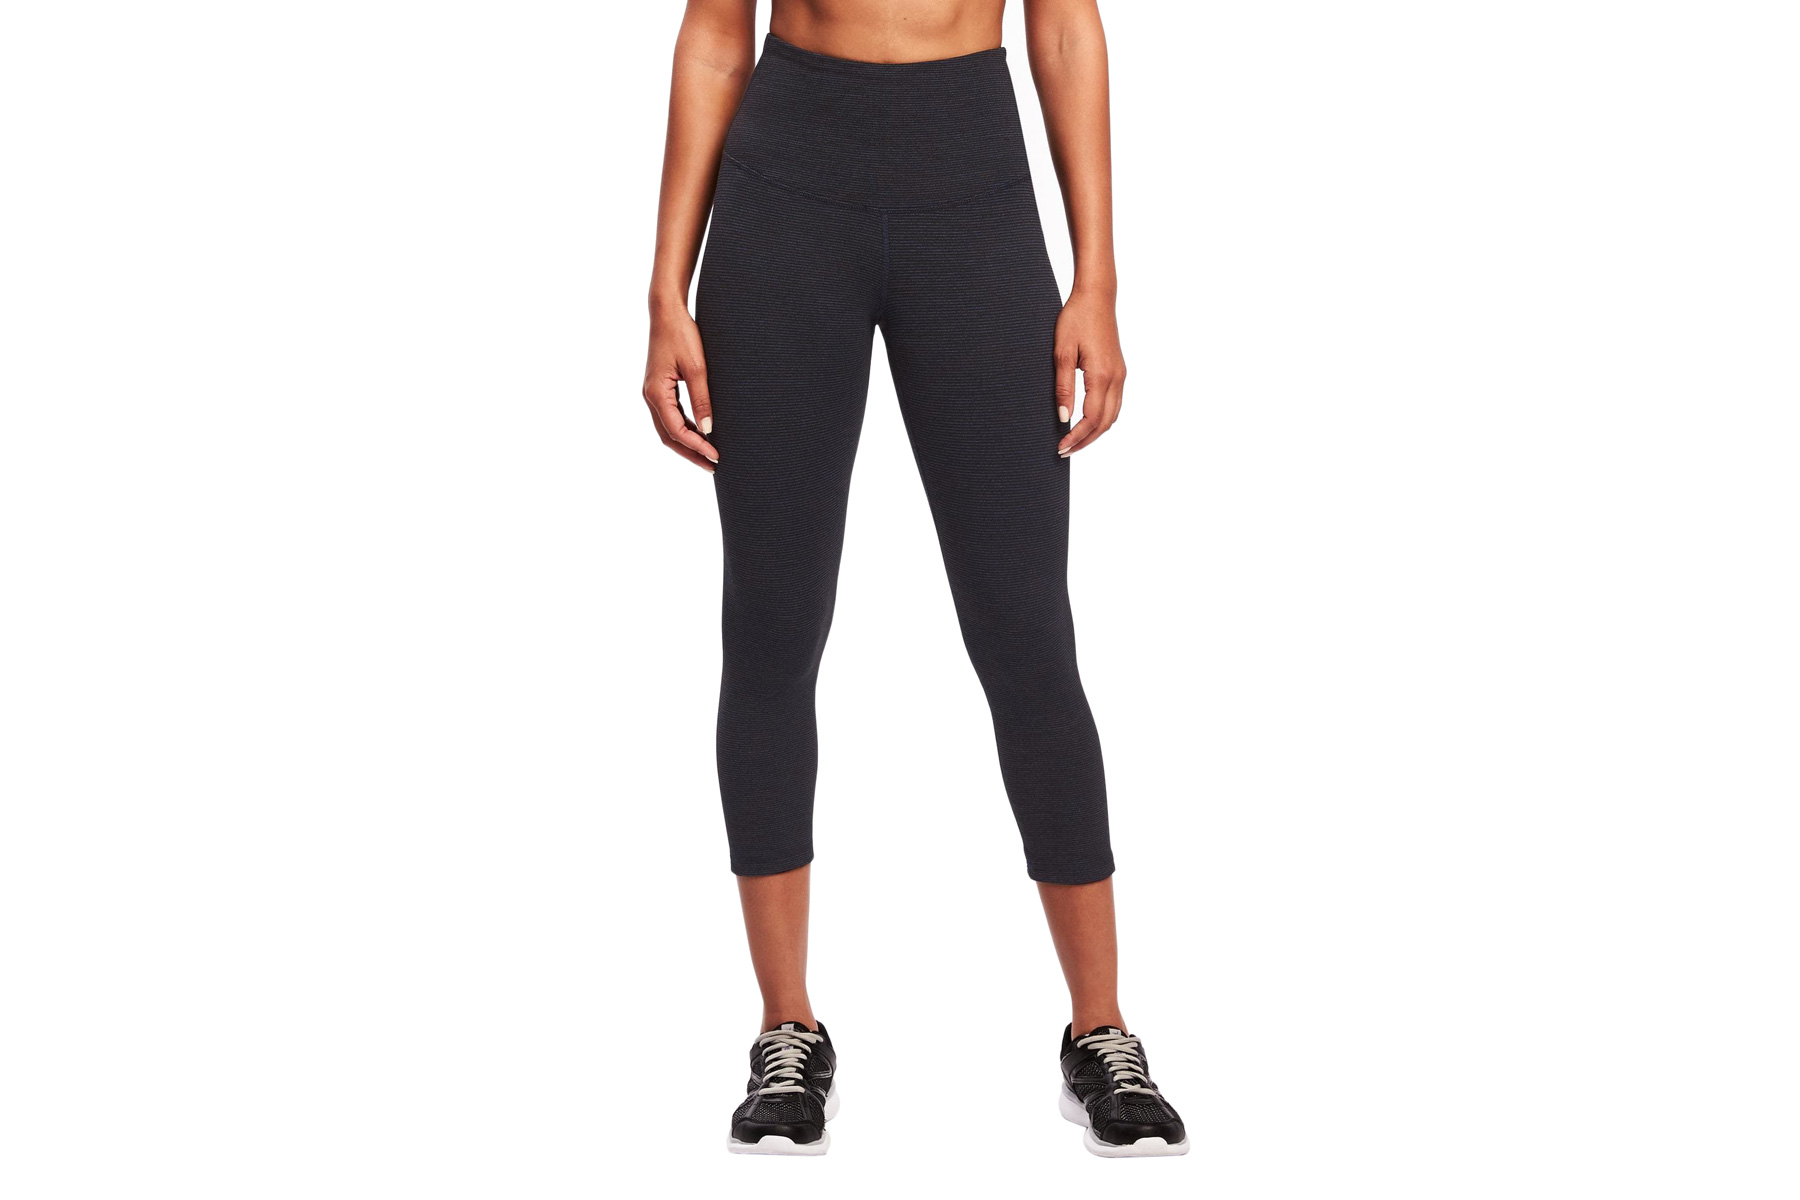 High-Rise Go-Warm Capri Leggings for Women